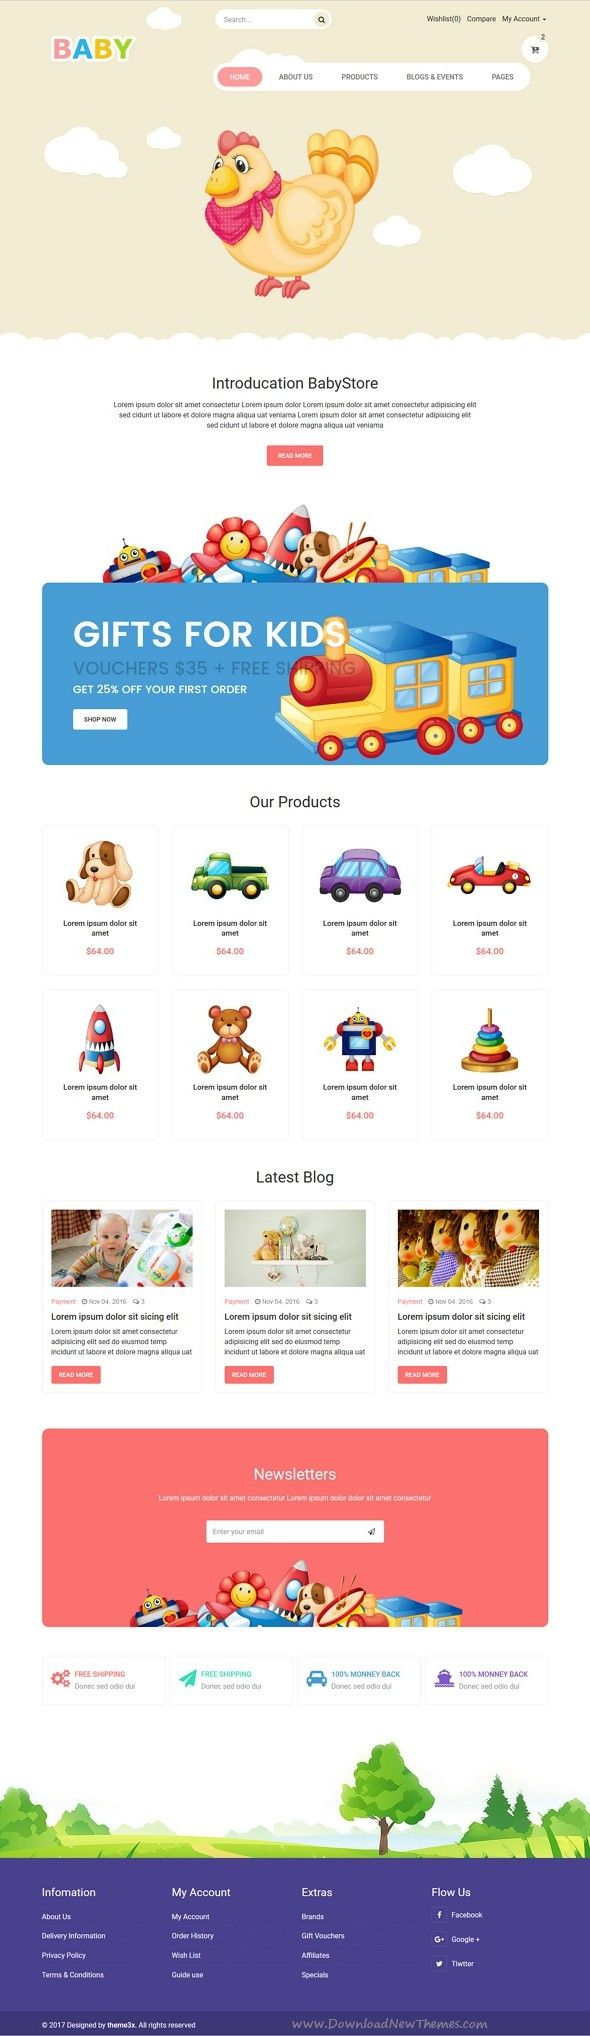 Toys for kids logo  Baby Store HTML Template baby baby kids baby shop baby